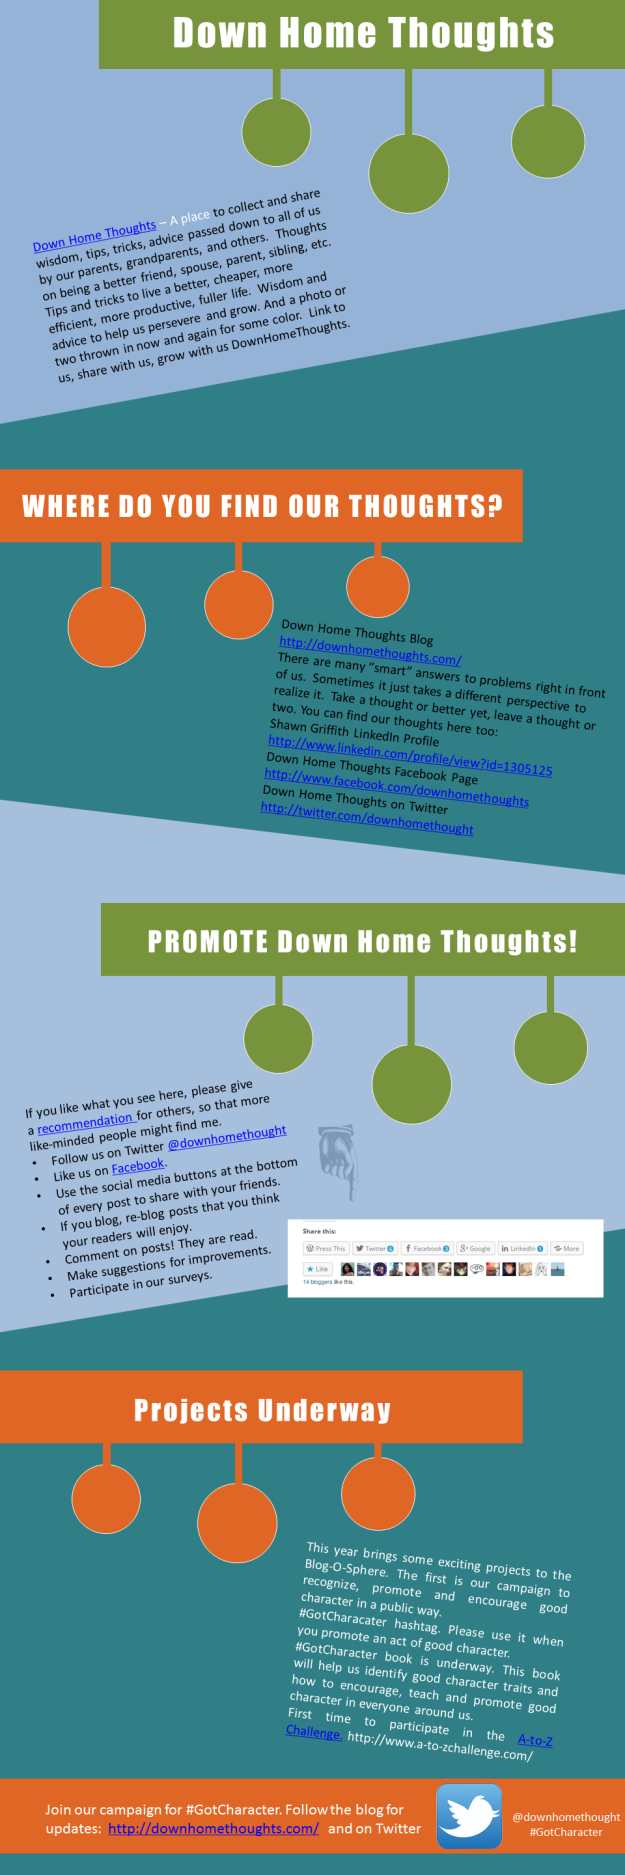 DownHomeThoughts InfoGraphic